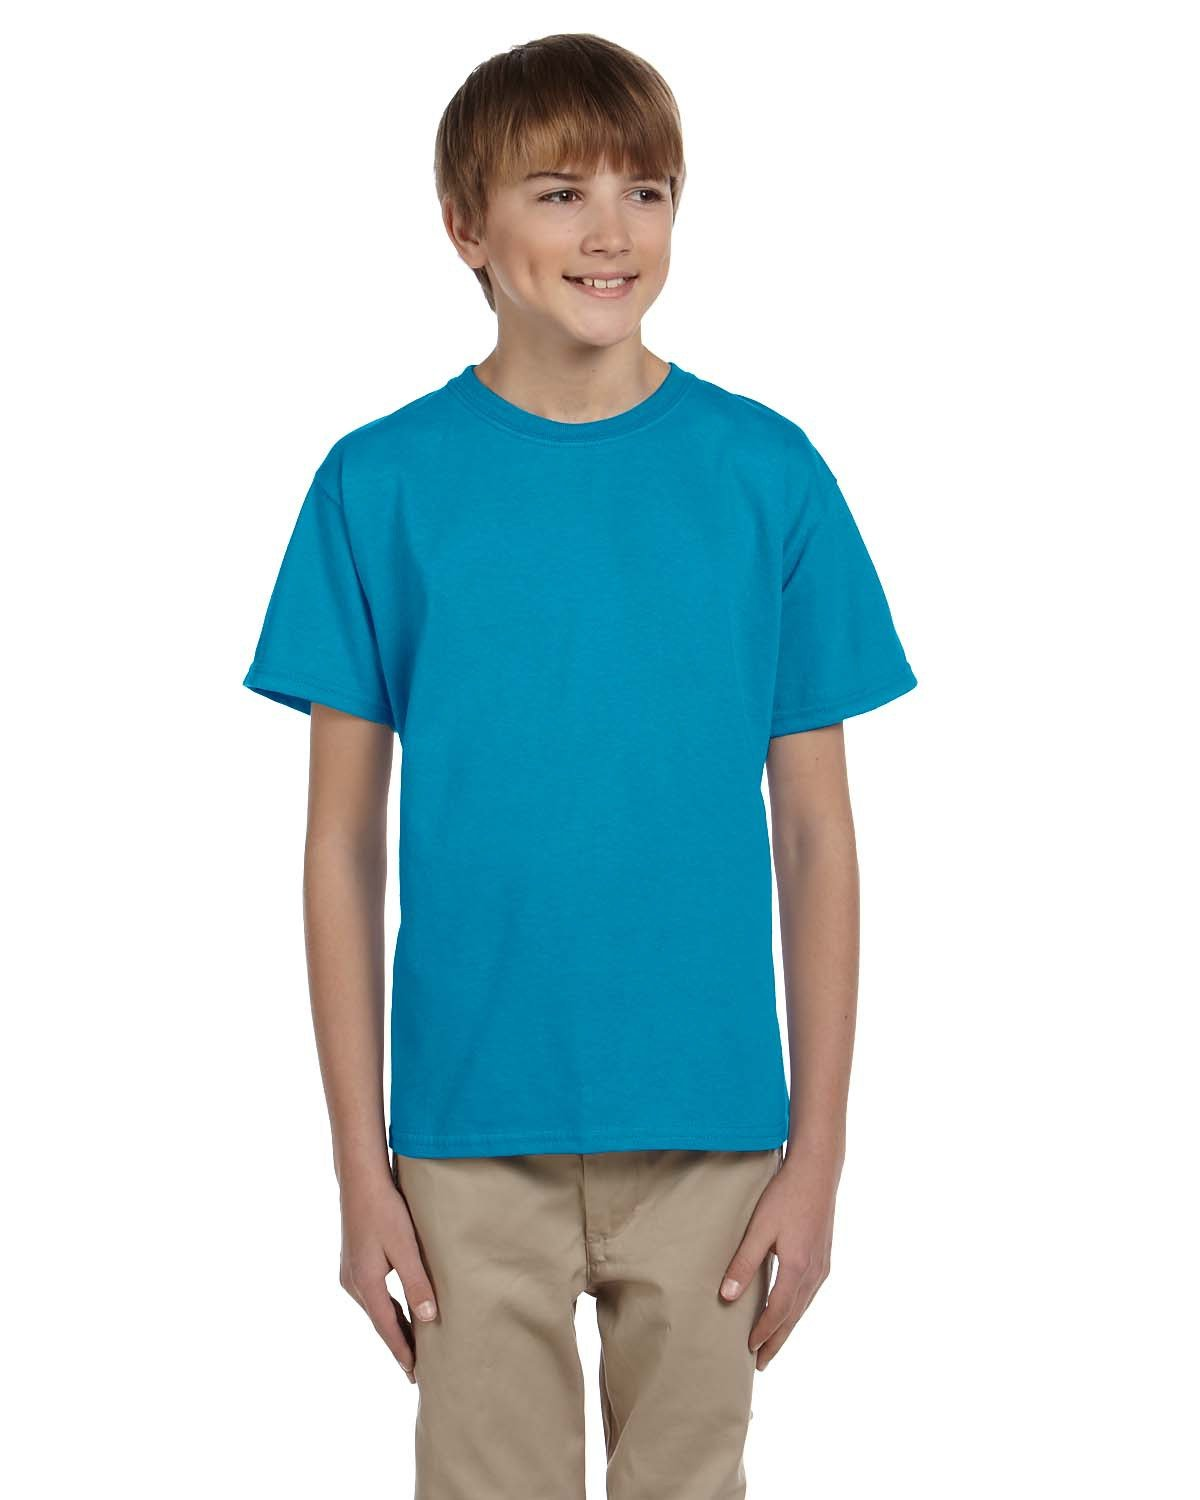 Hanes Youth 50/50 T-Shirt TEAL